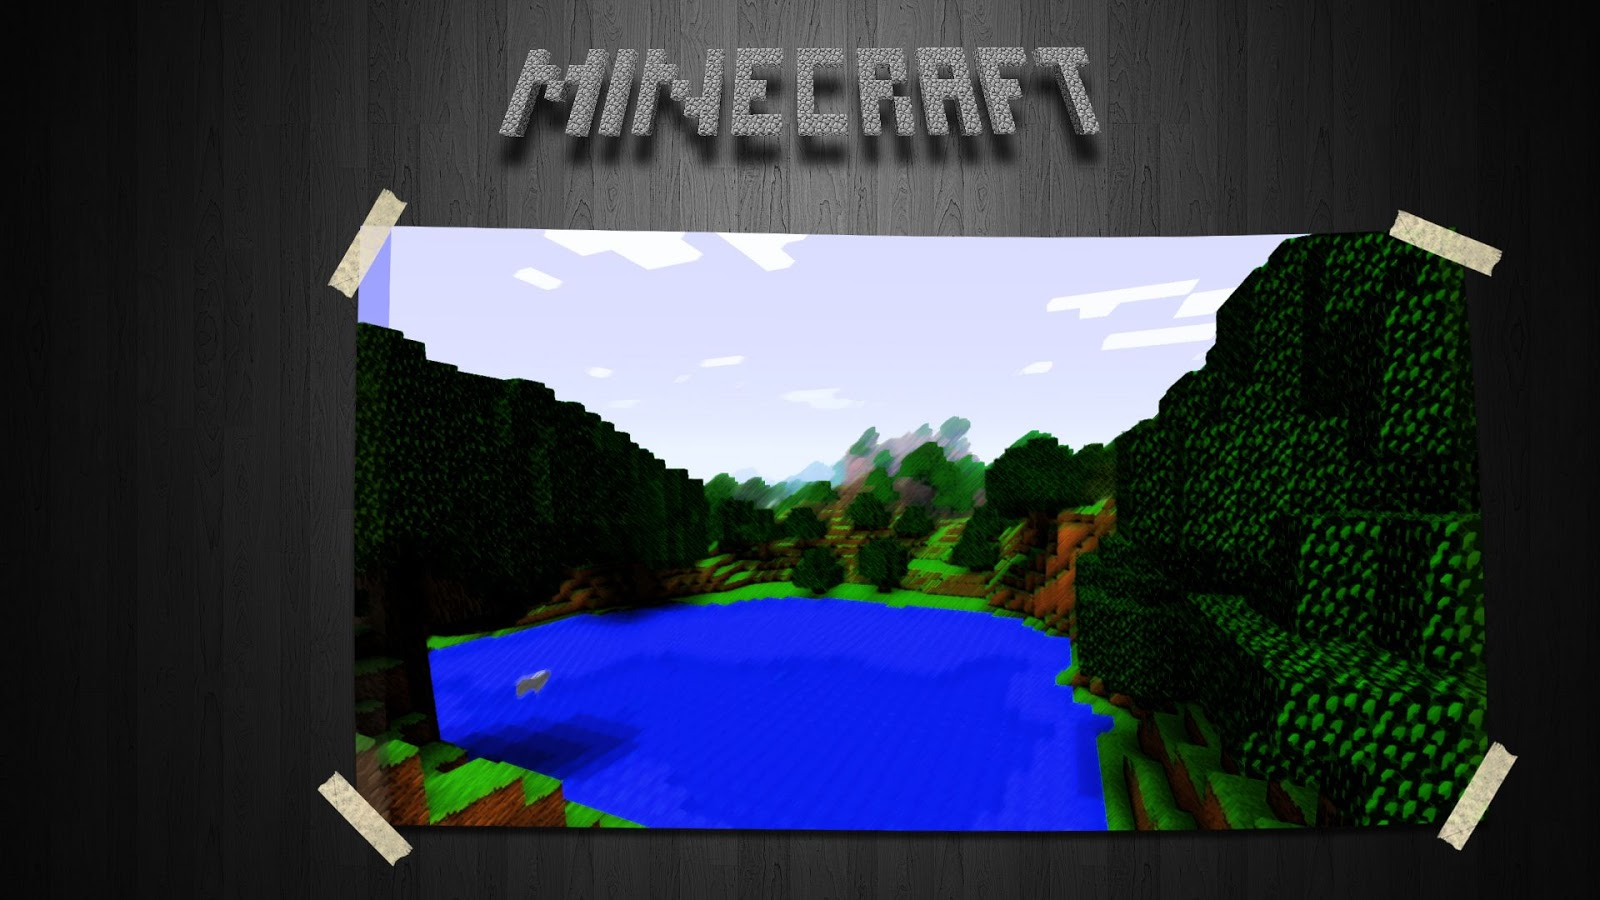 Cool Hd Minecraft Wallpapers